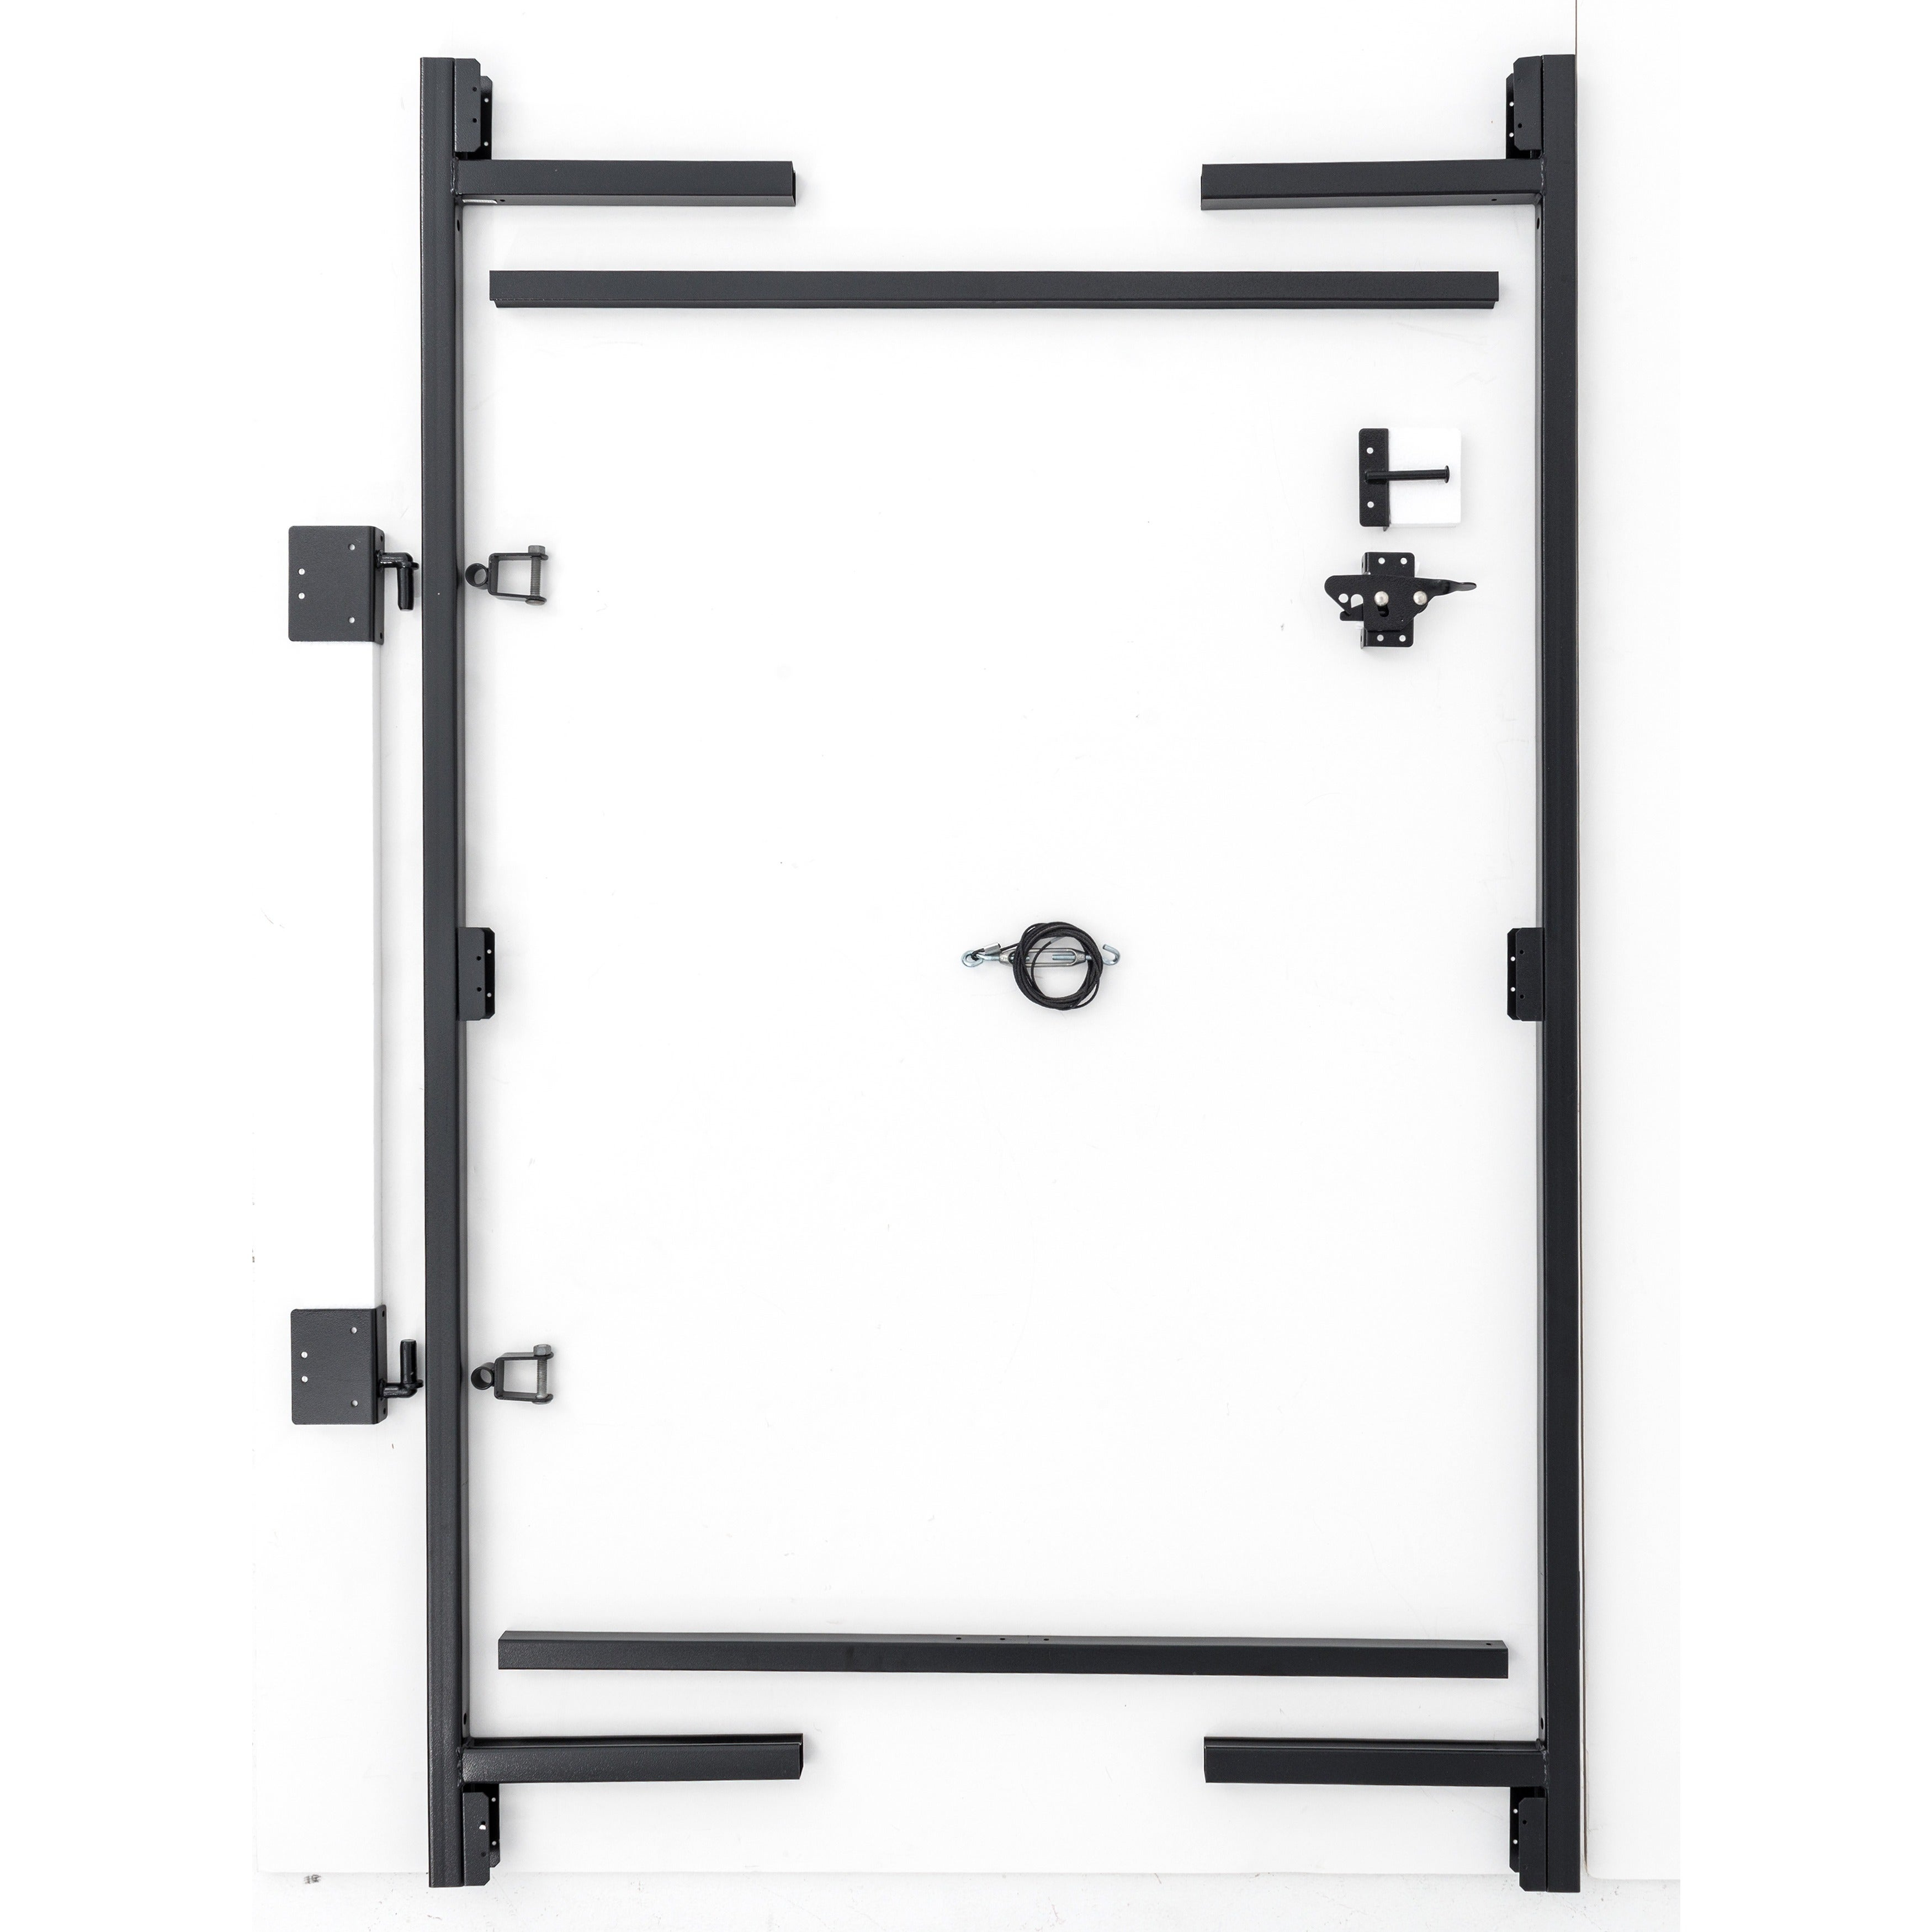 Shop Adjust A Gate Contractor Series 3 Rail 36 60 Inch Wide Kit Hoc Store Black Floral French Cuff Free Shipping Today 10698156